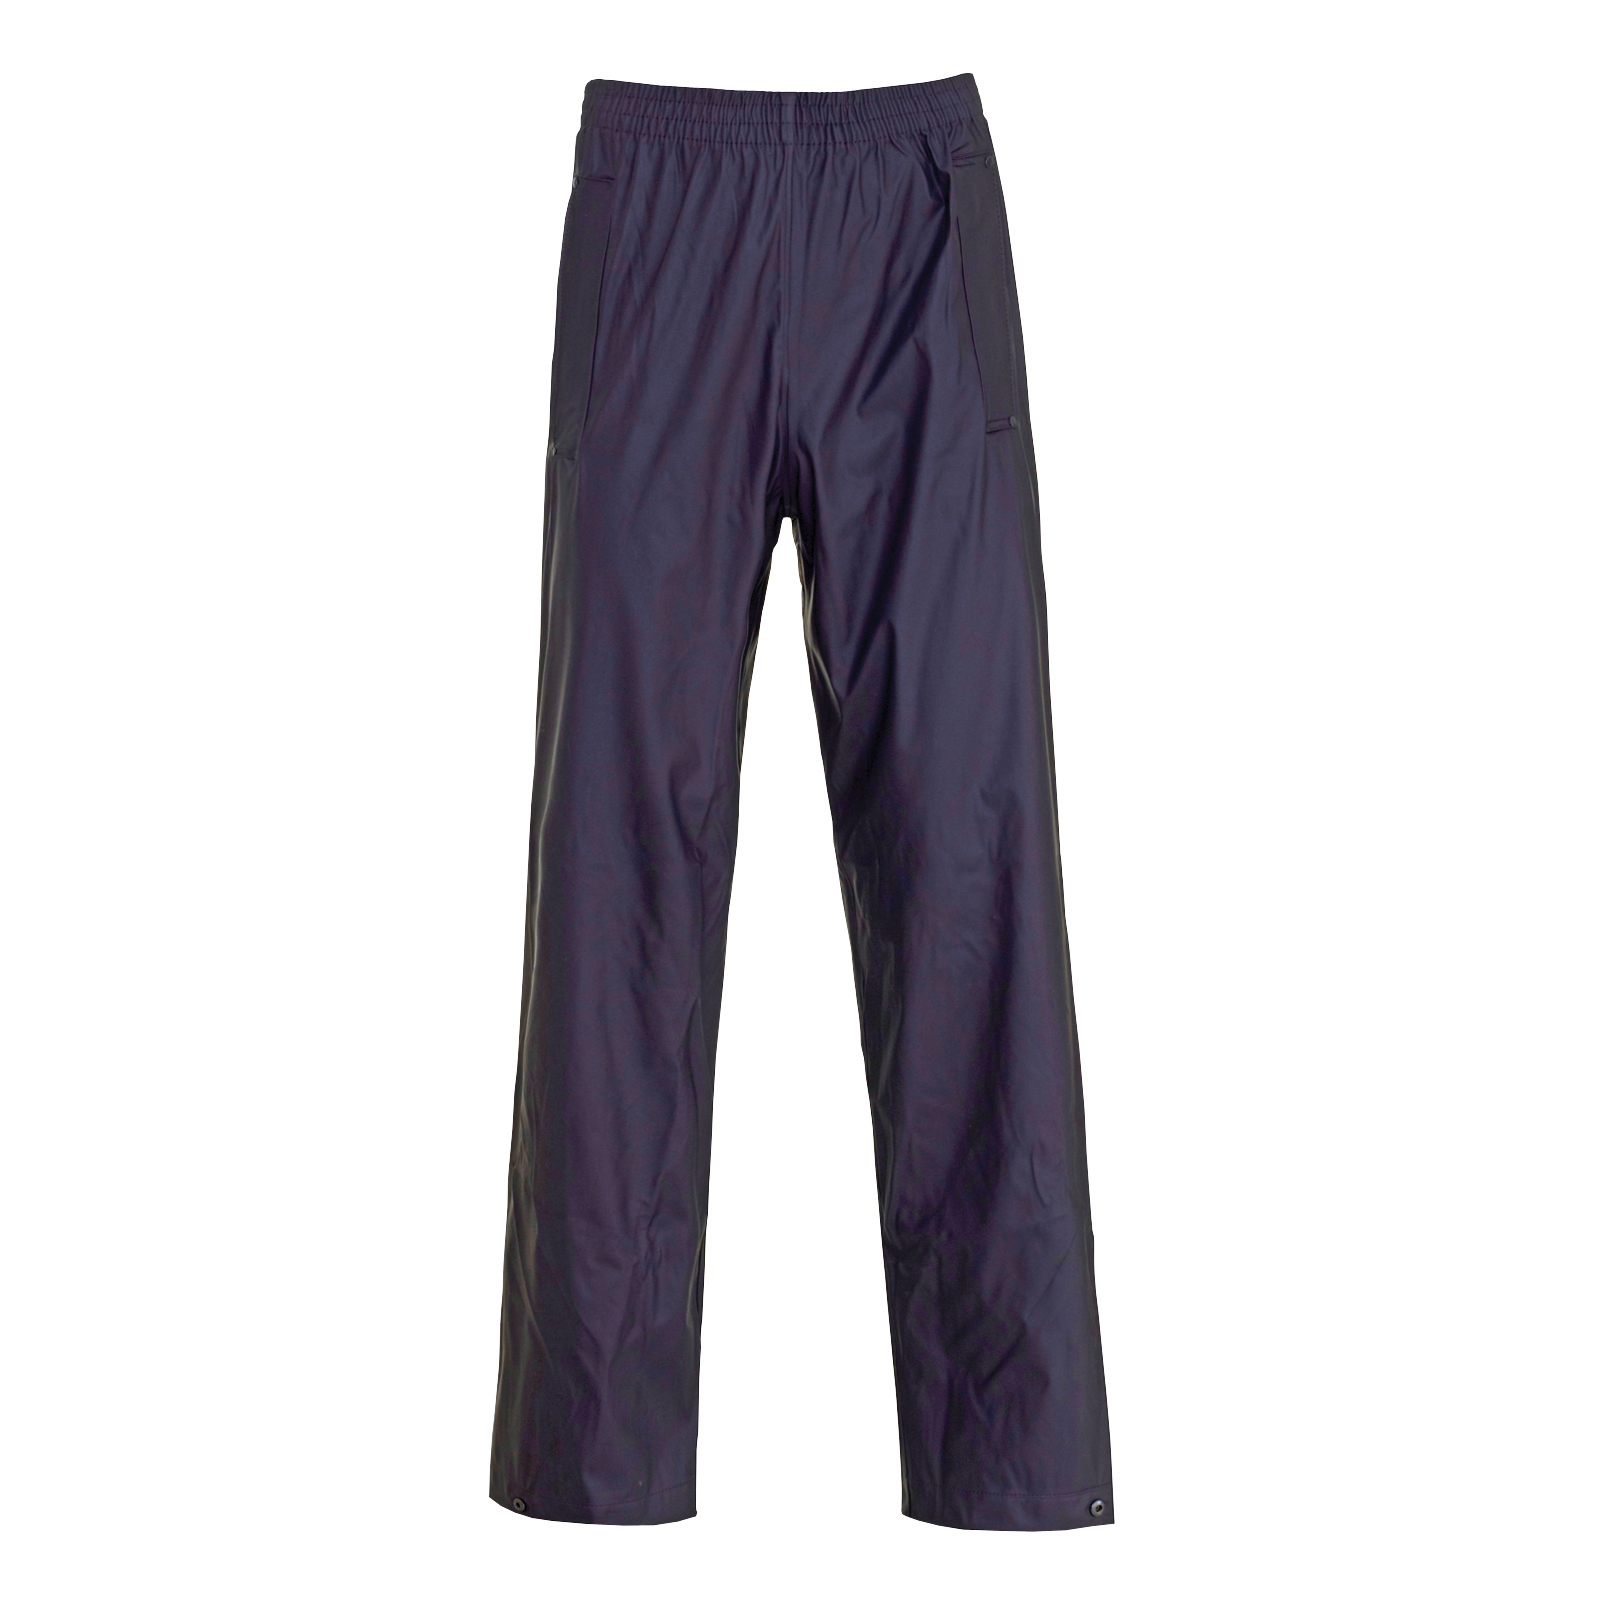 B-Dri Weatherproof Super Trousers Medium Navy Blue Ref SBDTNM Approx 3 Day Leadtime